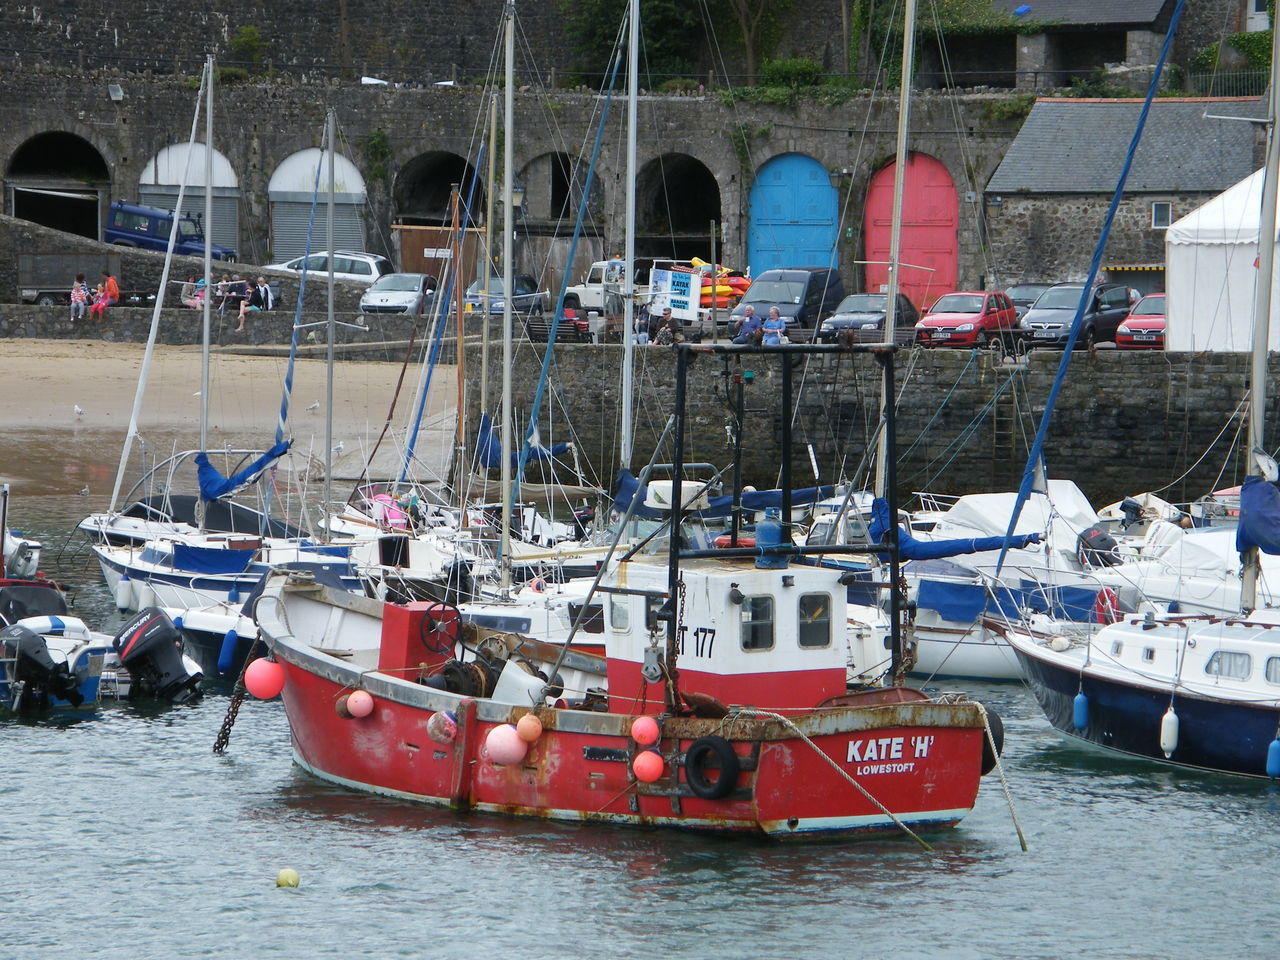 Architecture Building Exterior Day Harbor Mode Of Transport Moored Nautical Vessel No People Outdoors Pembrokeshire Pembrokeshire Coast Pembrokeshire Coastal Path Seaside Seaside Town Tenby Tenby Harbour Transportation Travel Destinations Water